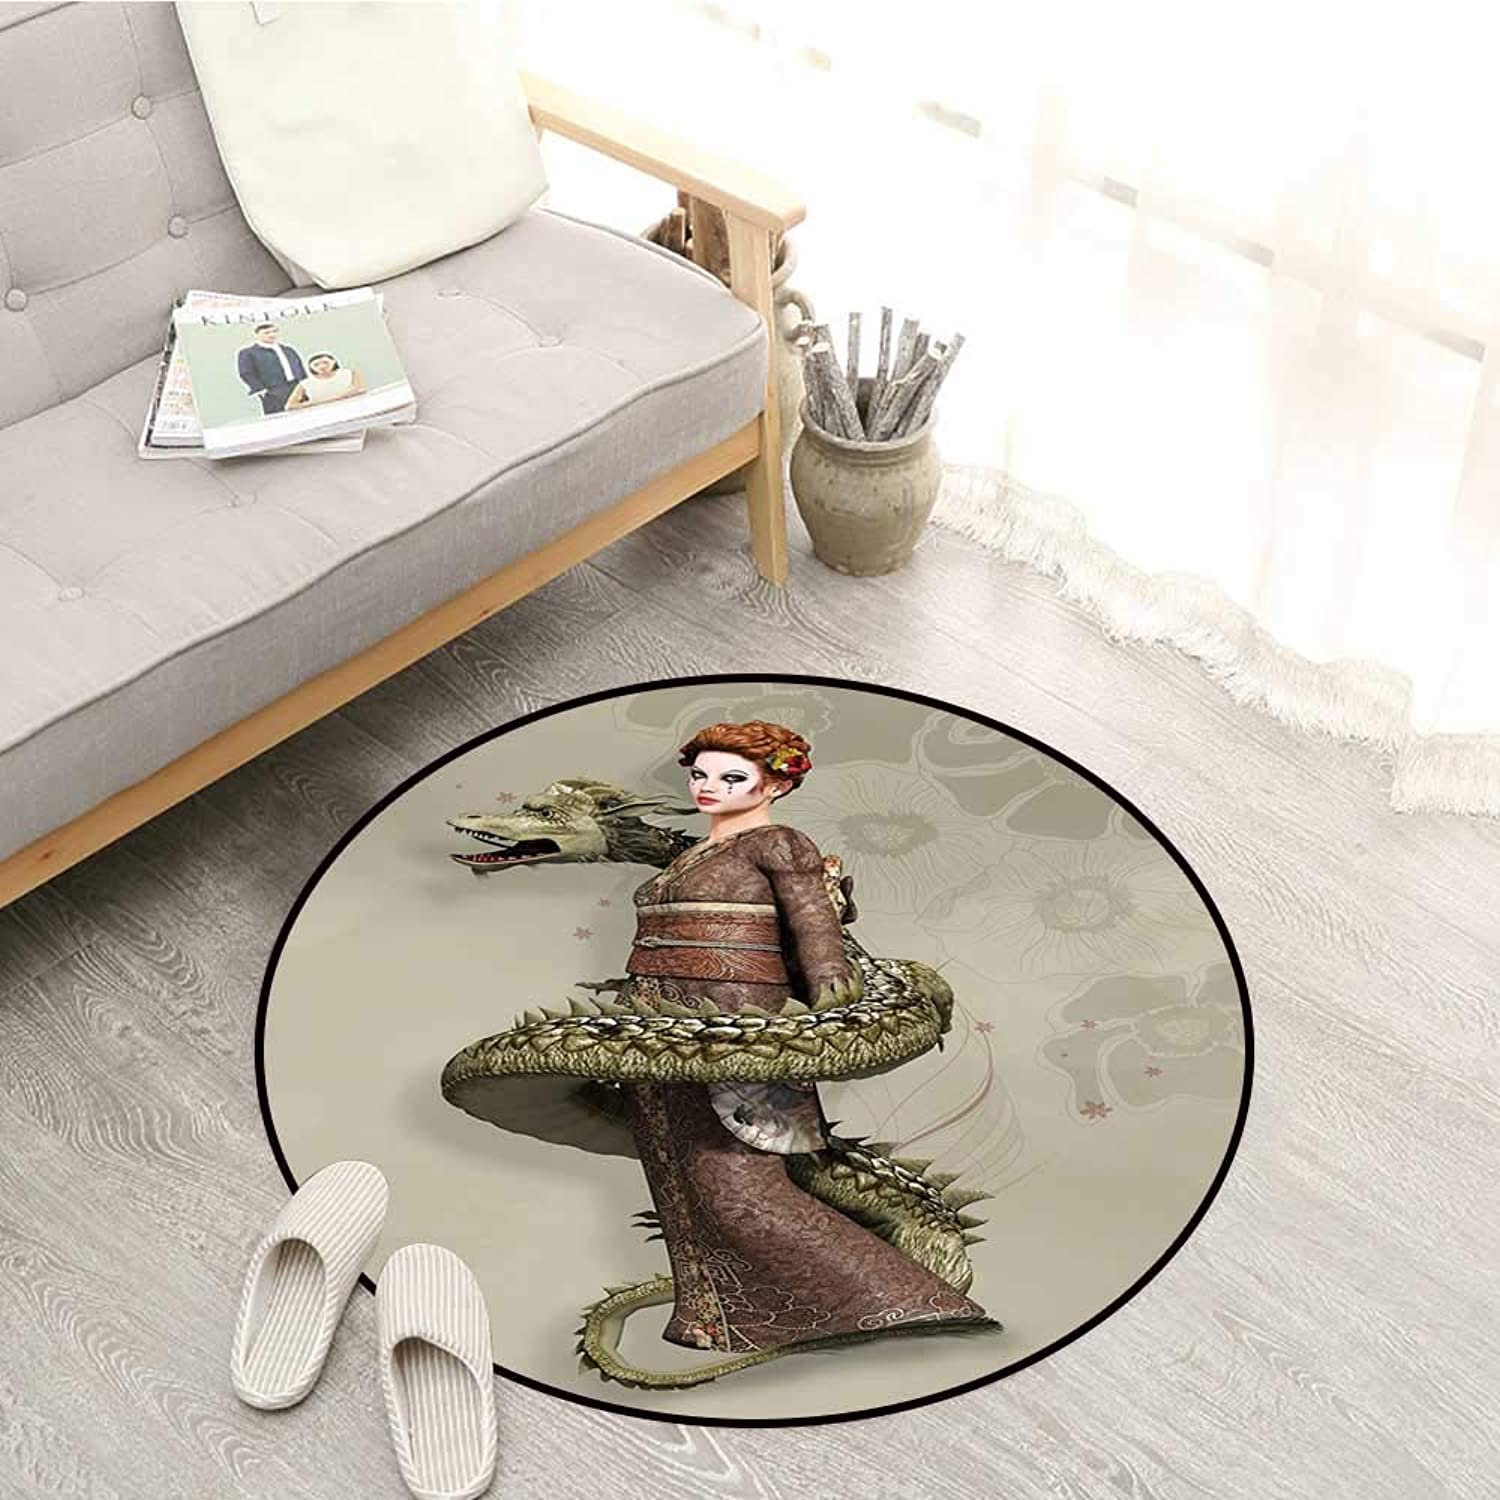 Fantasy Kids Rugs Westernly Geisha with Cry Make Up Wrapped by Spiralling Dragon Sofa Coffee Table Mat 4'11  Eggshell Olive Green Brown